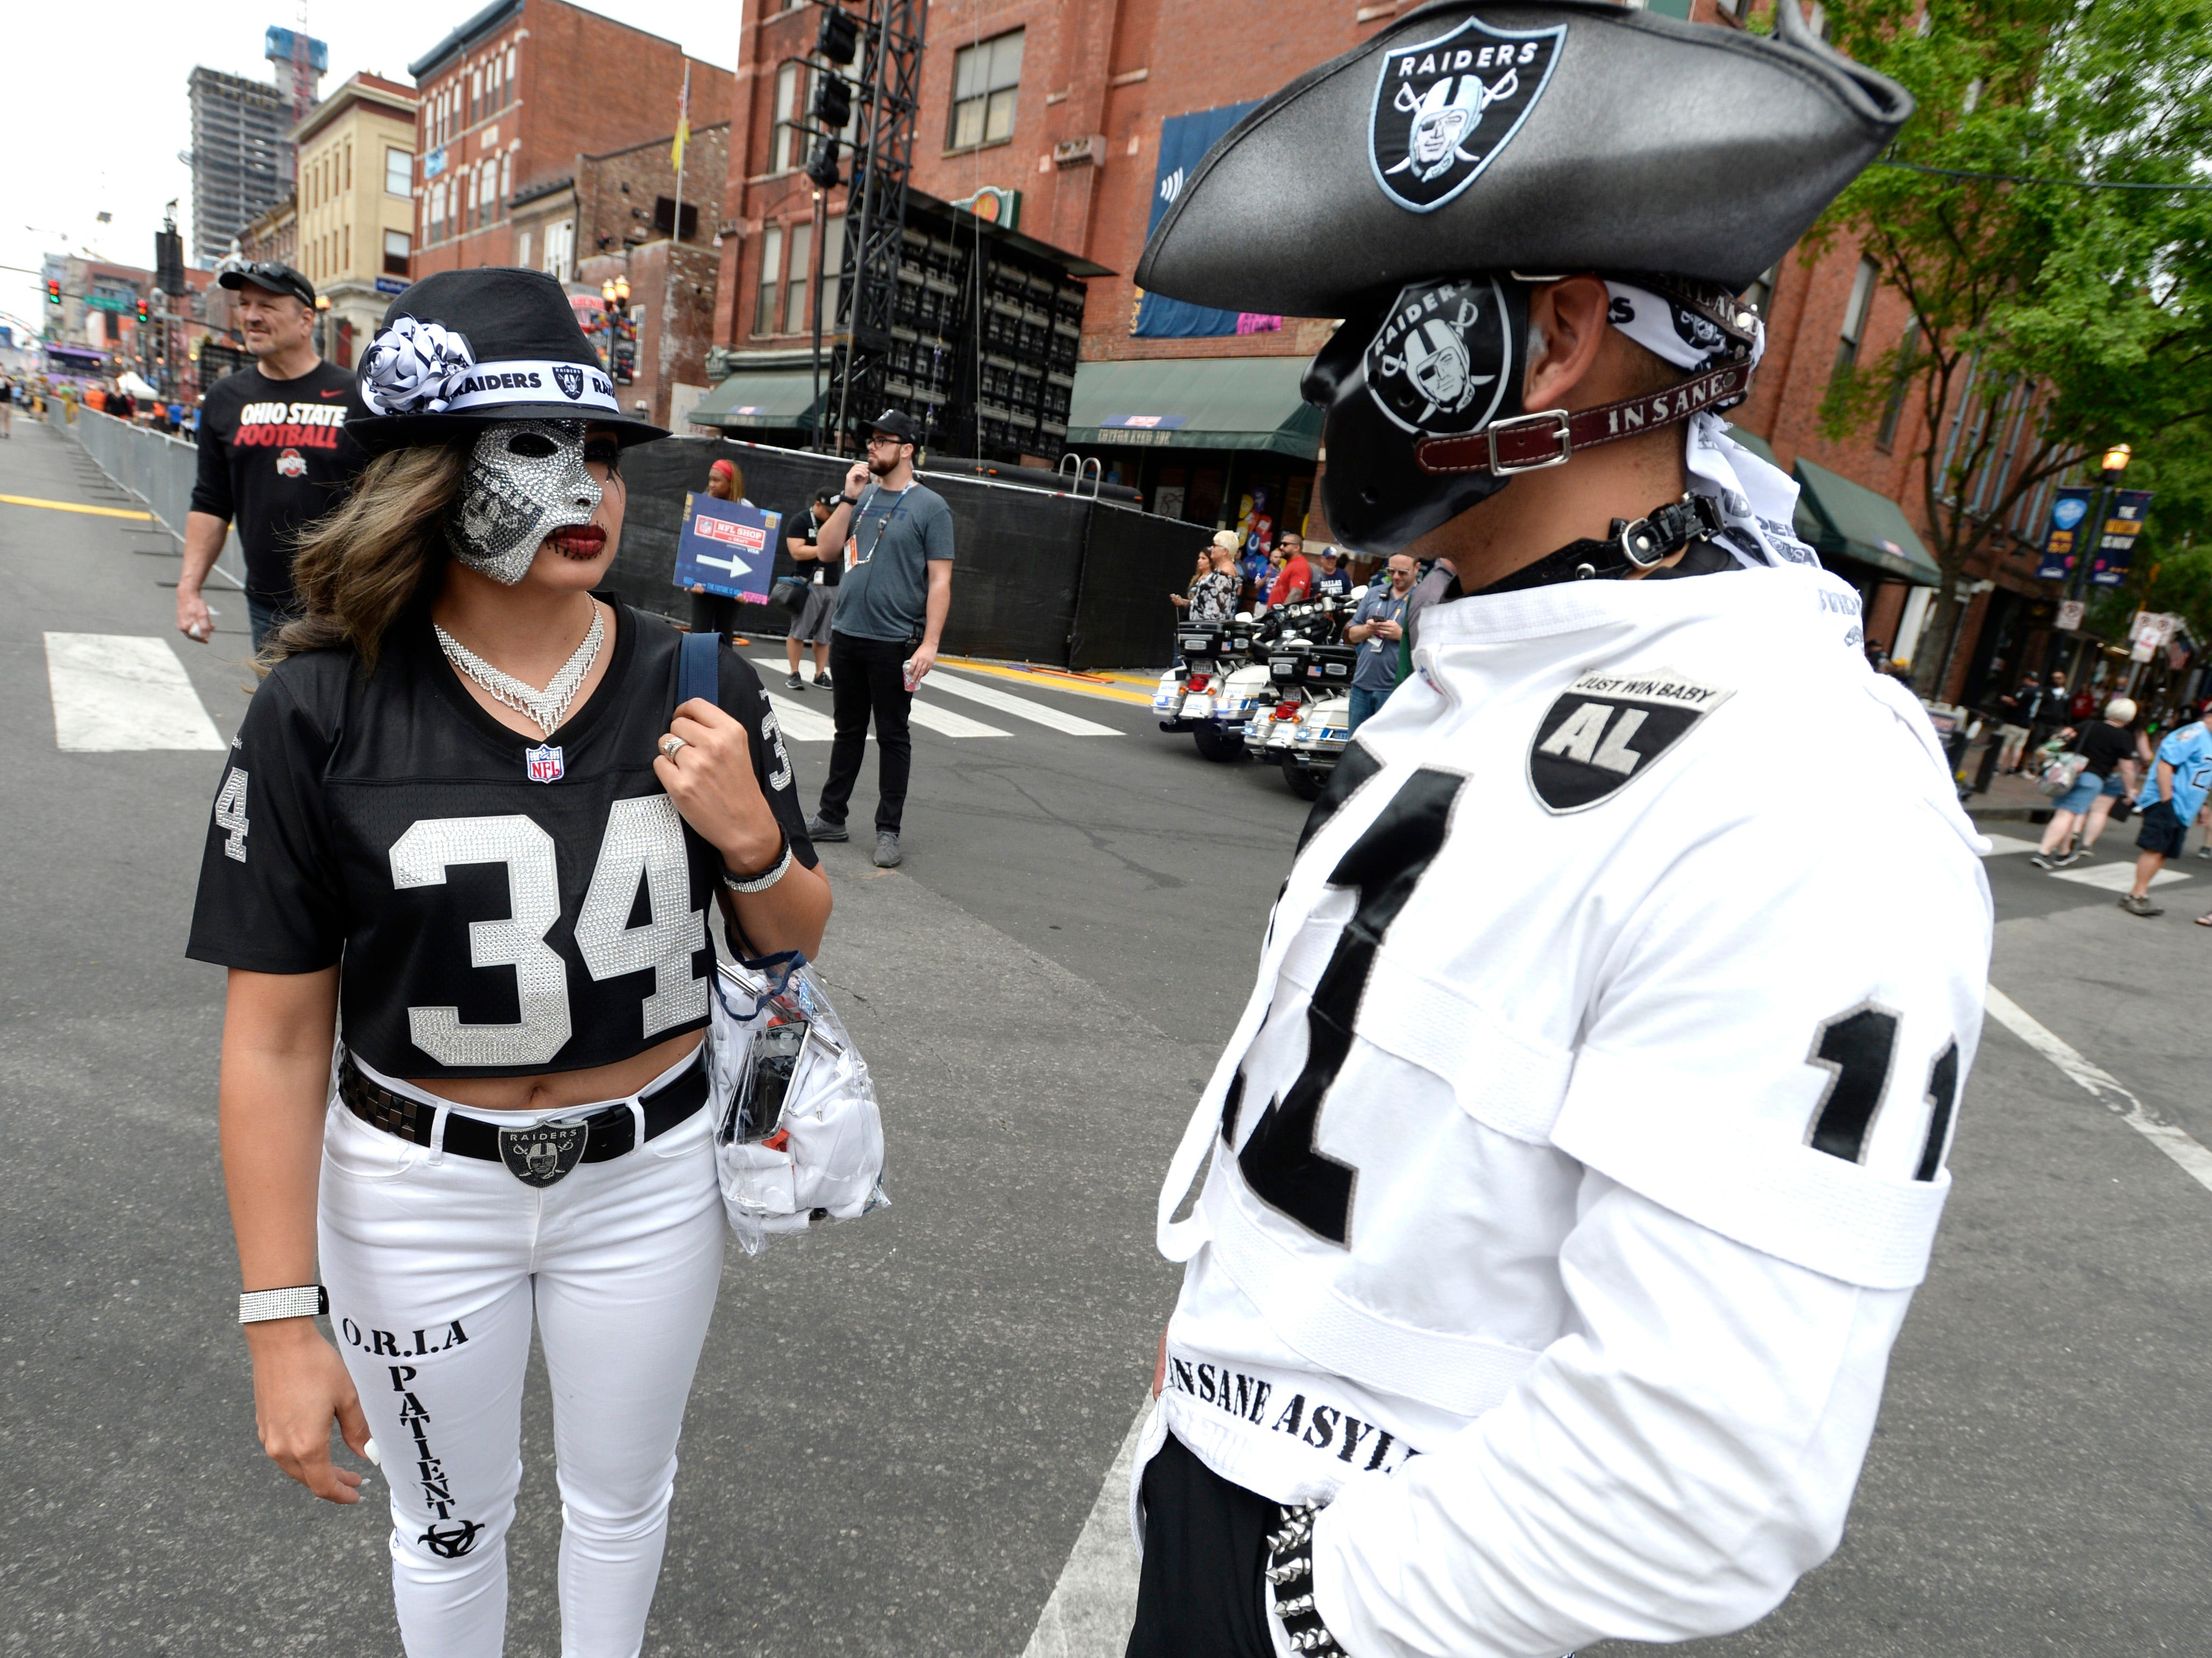 Raiders fans Stephanie Ramos and Mario Orozco chat on Lower Broadway before the start of the 2019 NFL Draft in Nashville, Tenn., Thursday, April 25, 2019.